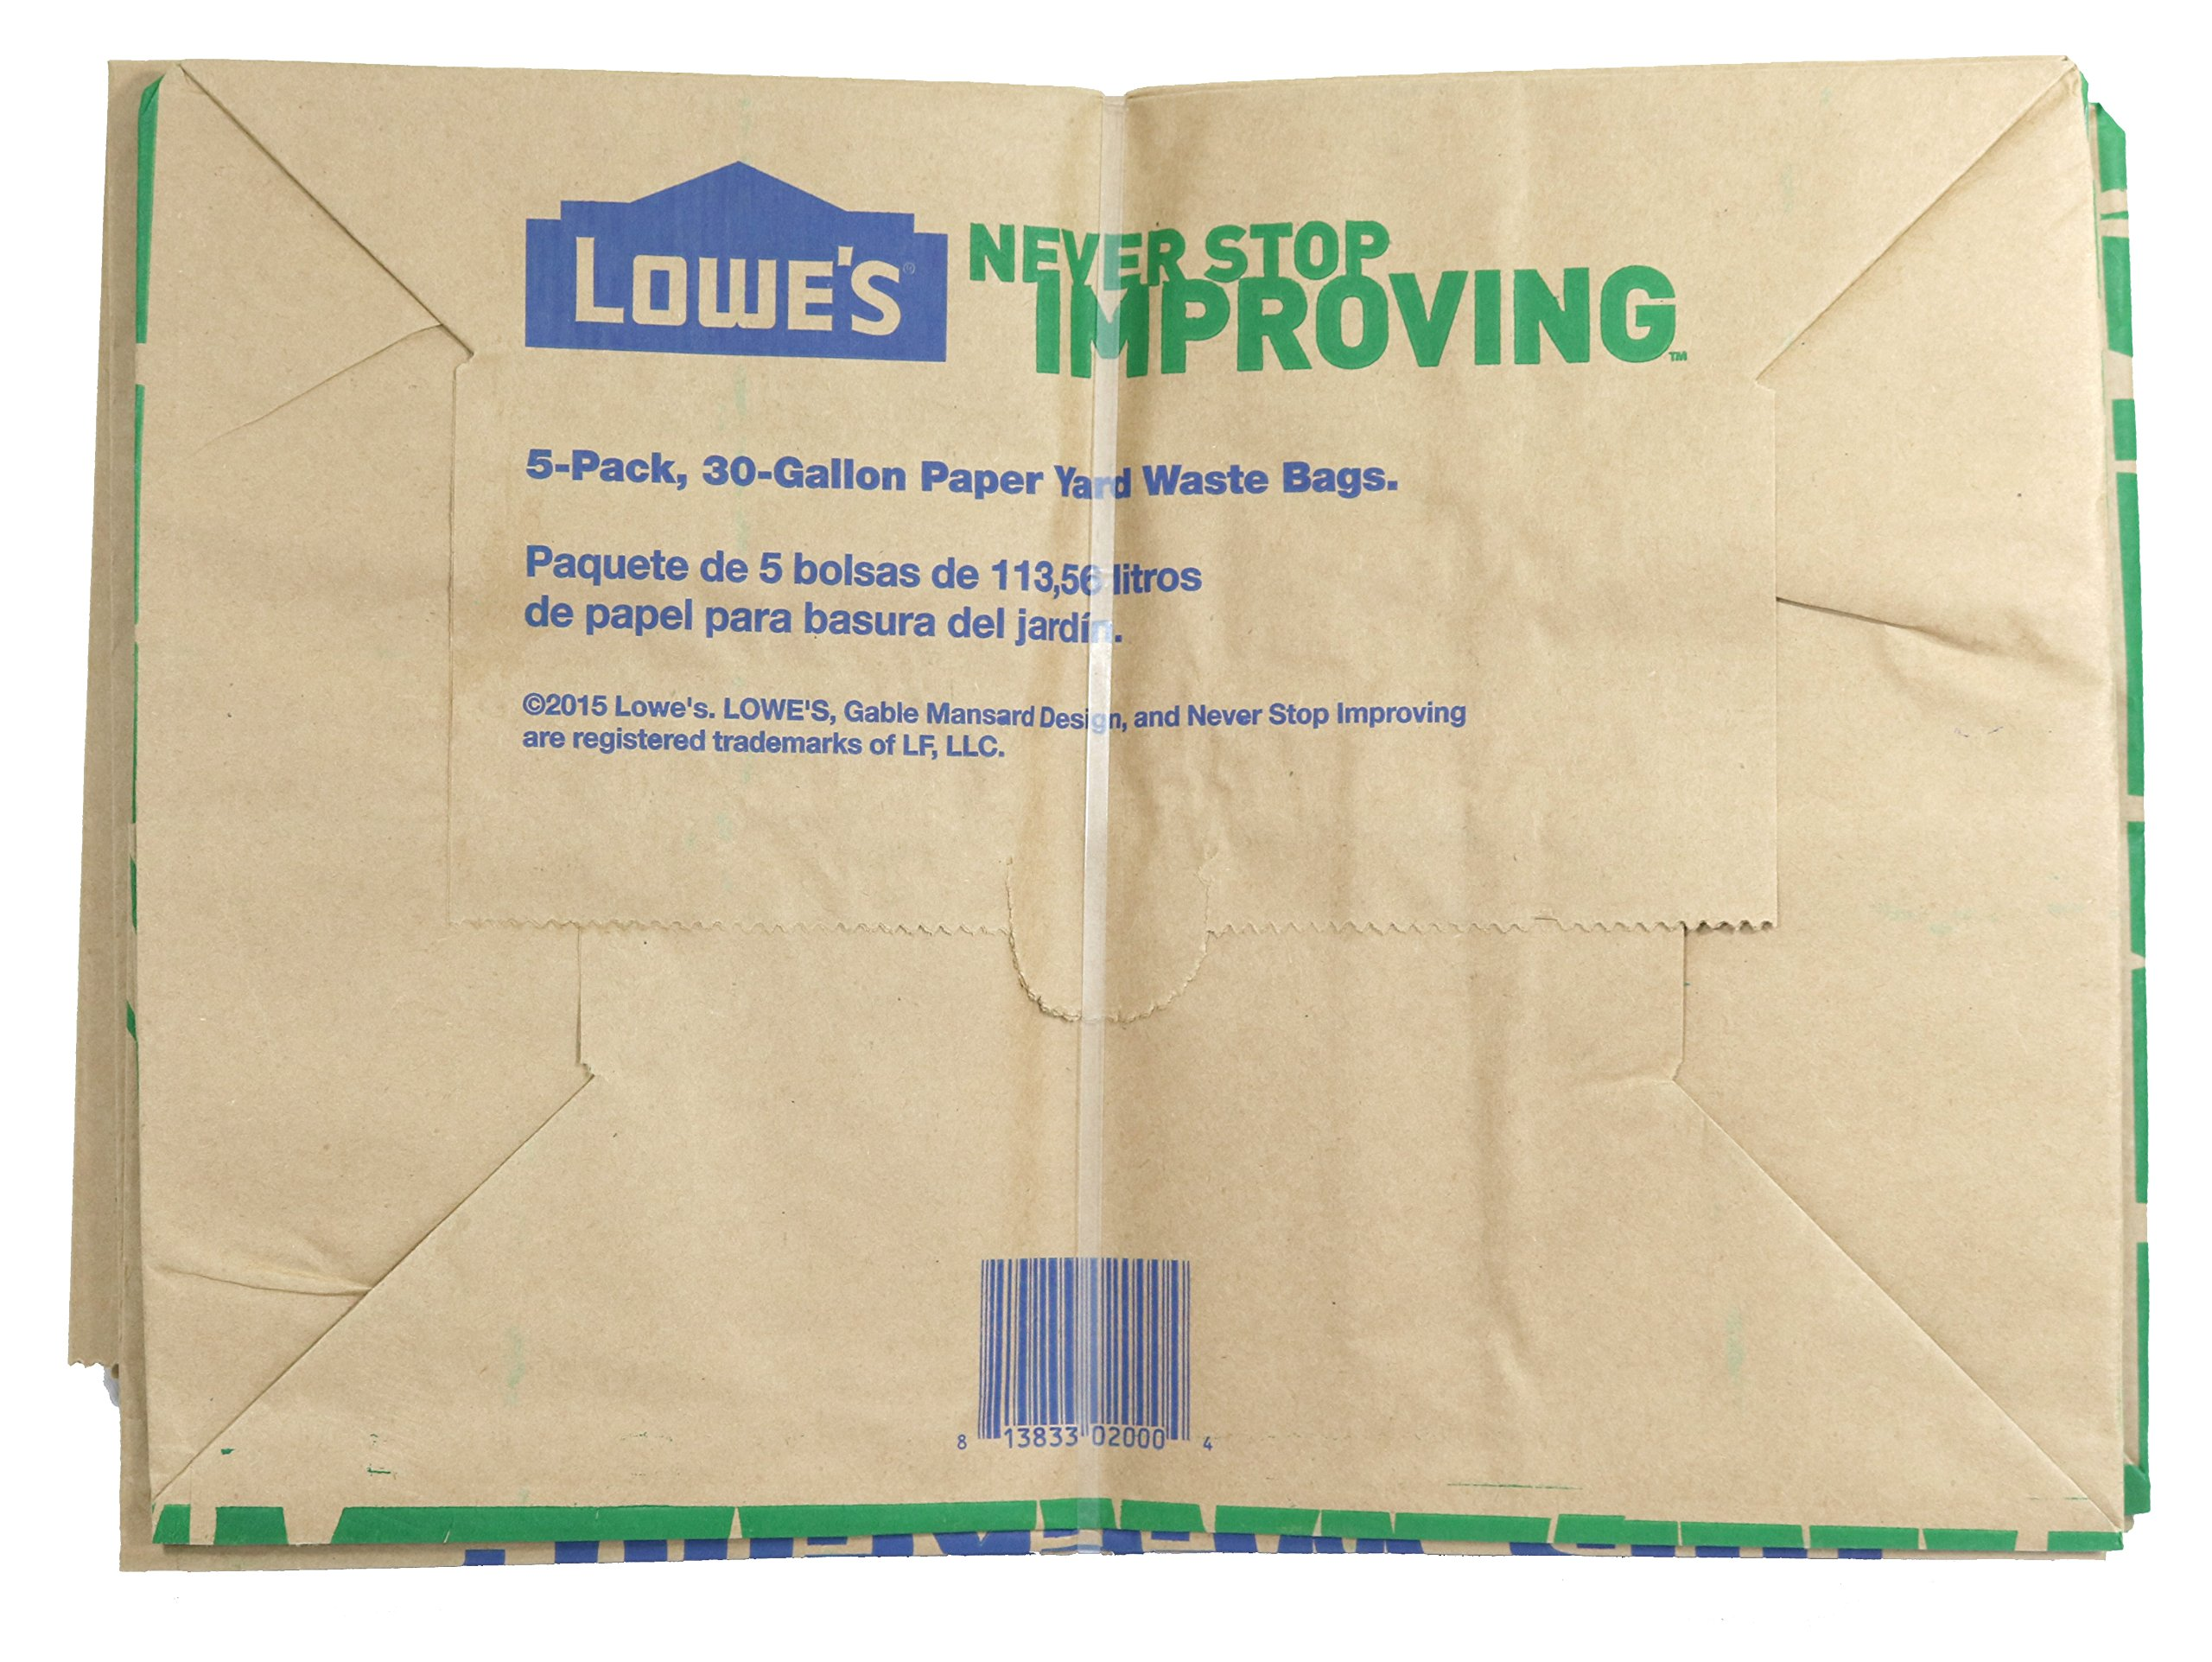 Lowe's H&PC-75419 (25 Count) 30 Gallon Heavy Duty Brown Paper Lawn and Refuse Bags for Home, Original Version by Lowe's (Image #4)